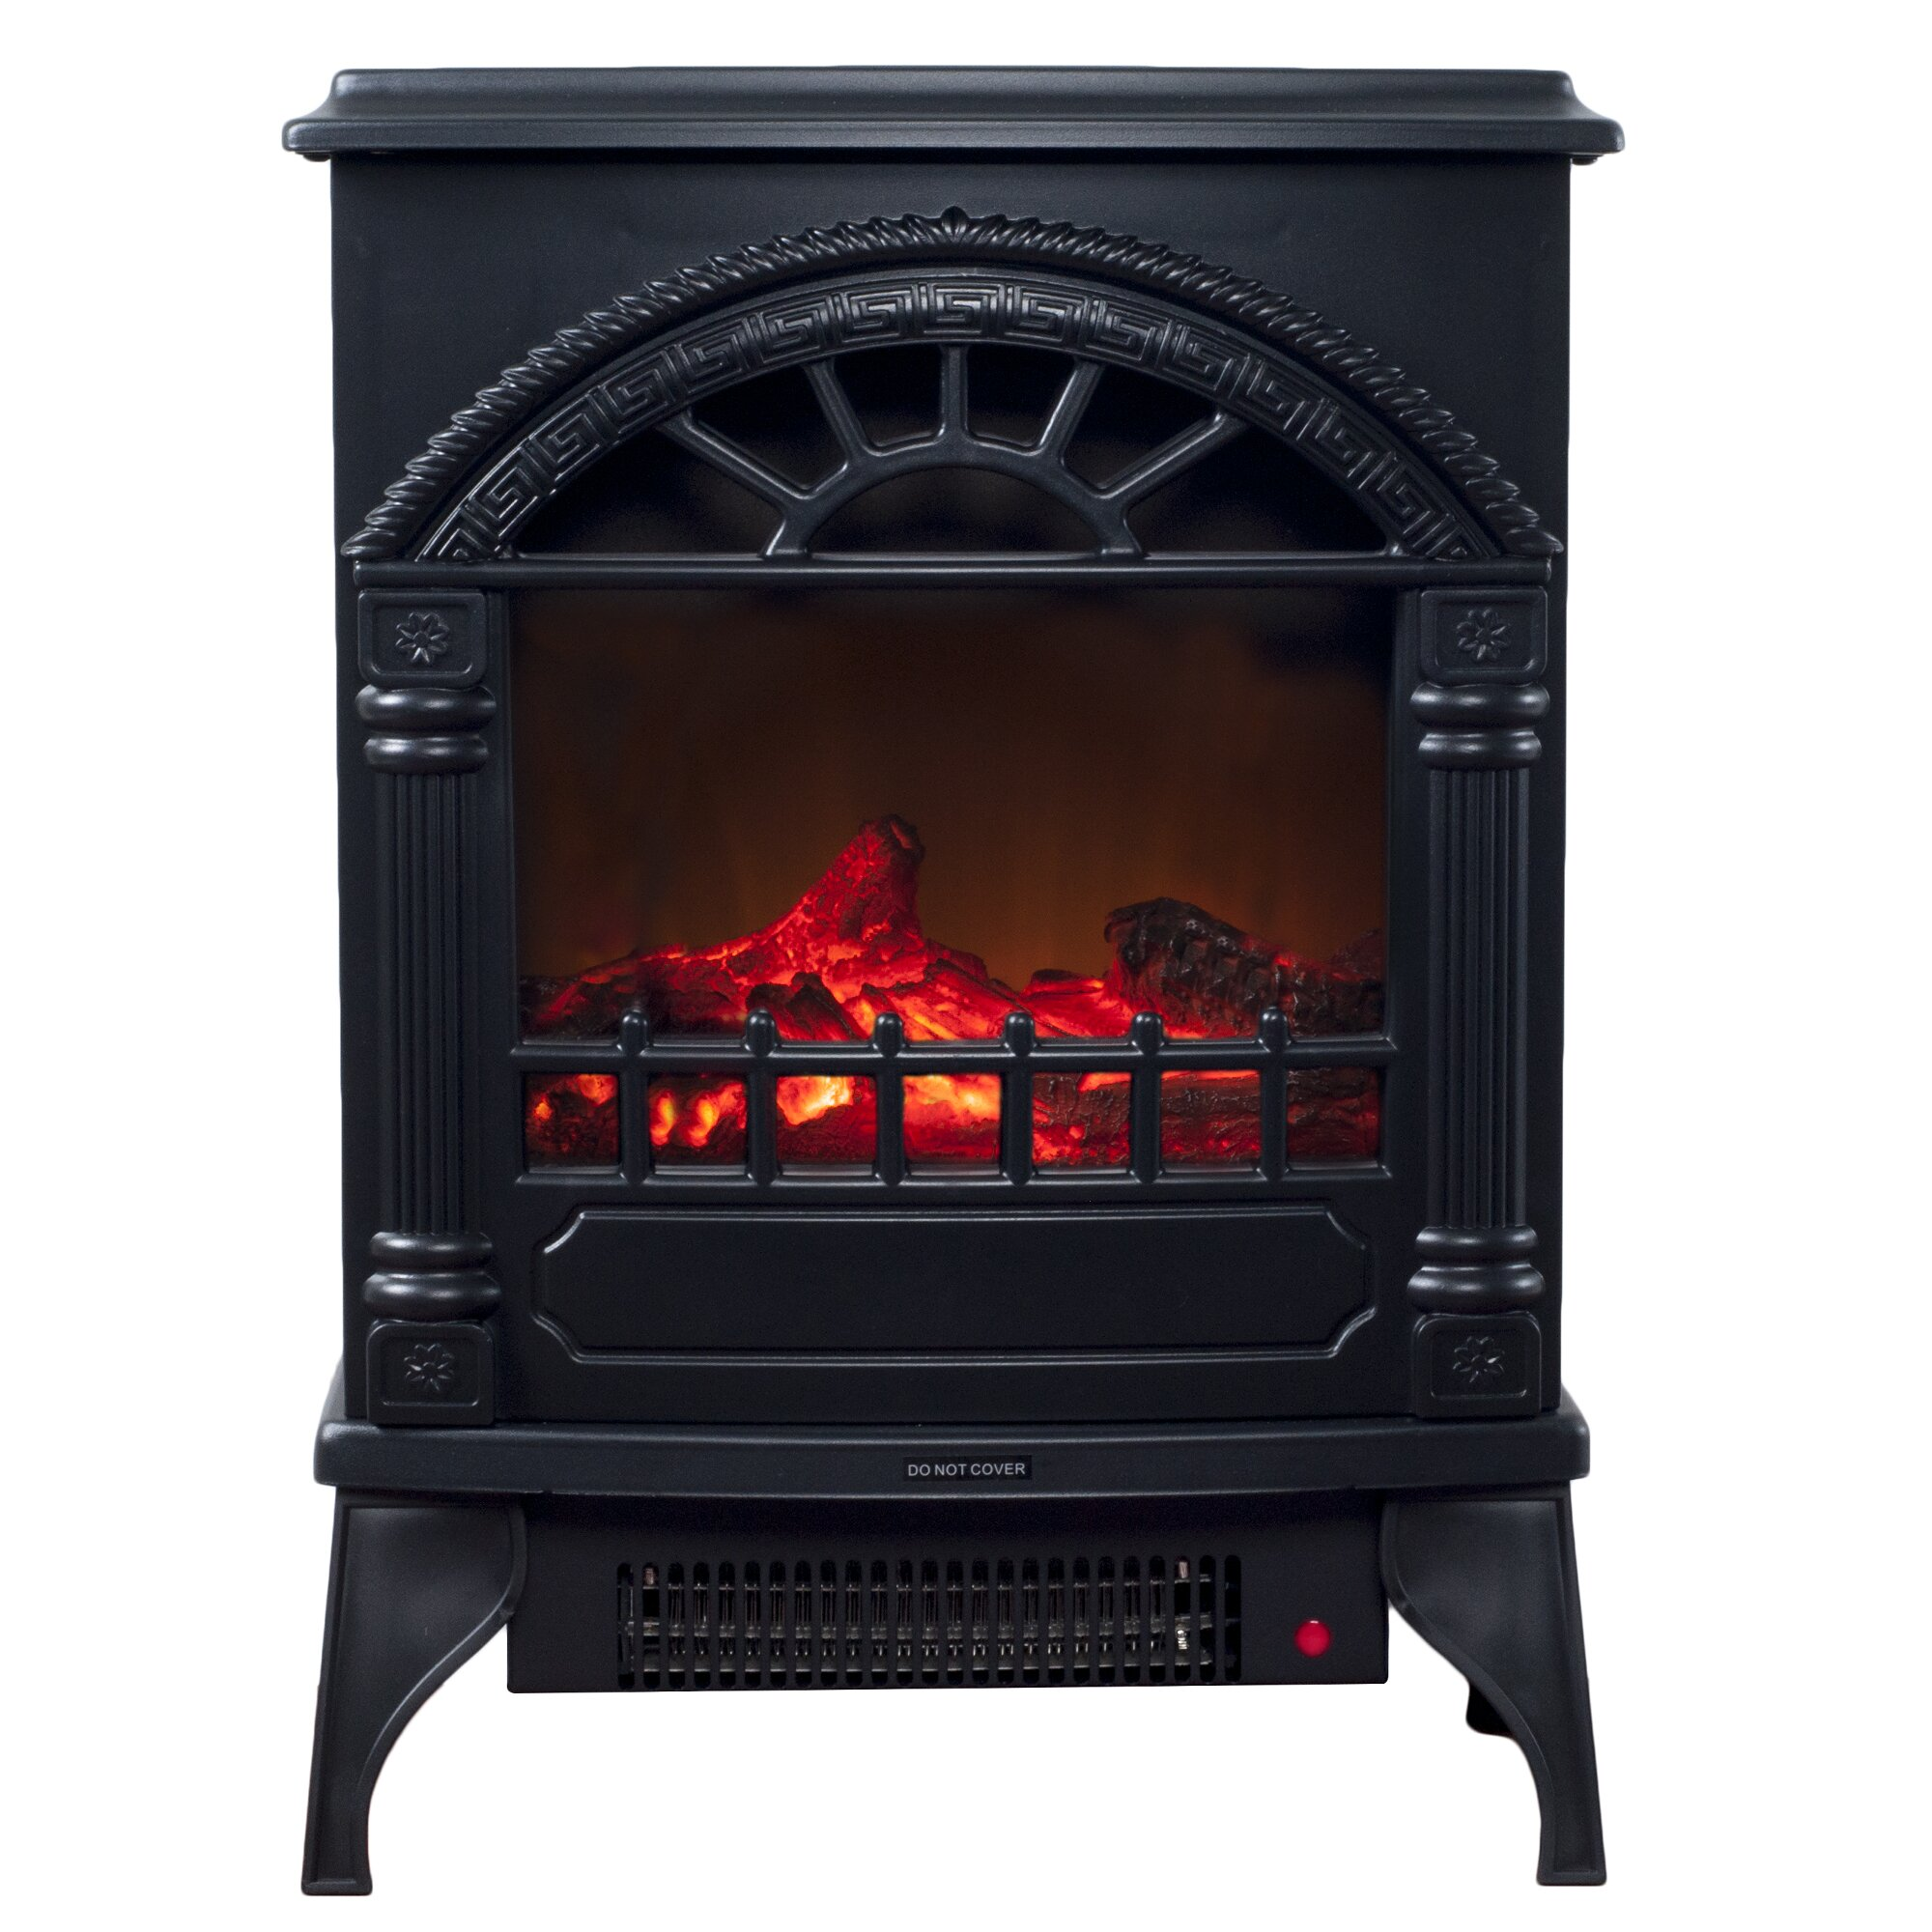 Northwest classic freestanding 400 square foot electric stove reviews - Reviews on electric stoves ...